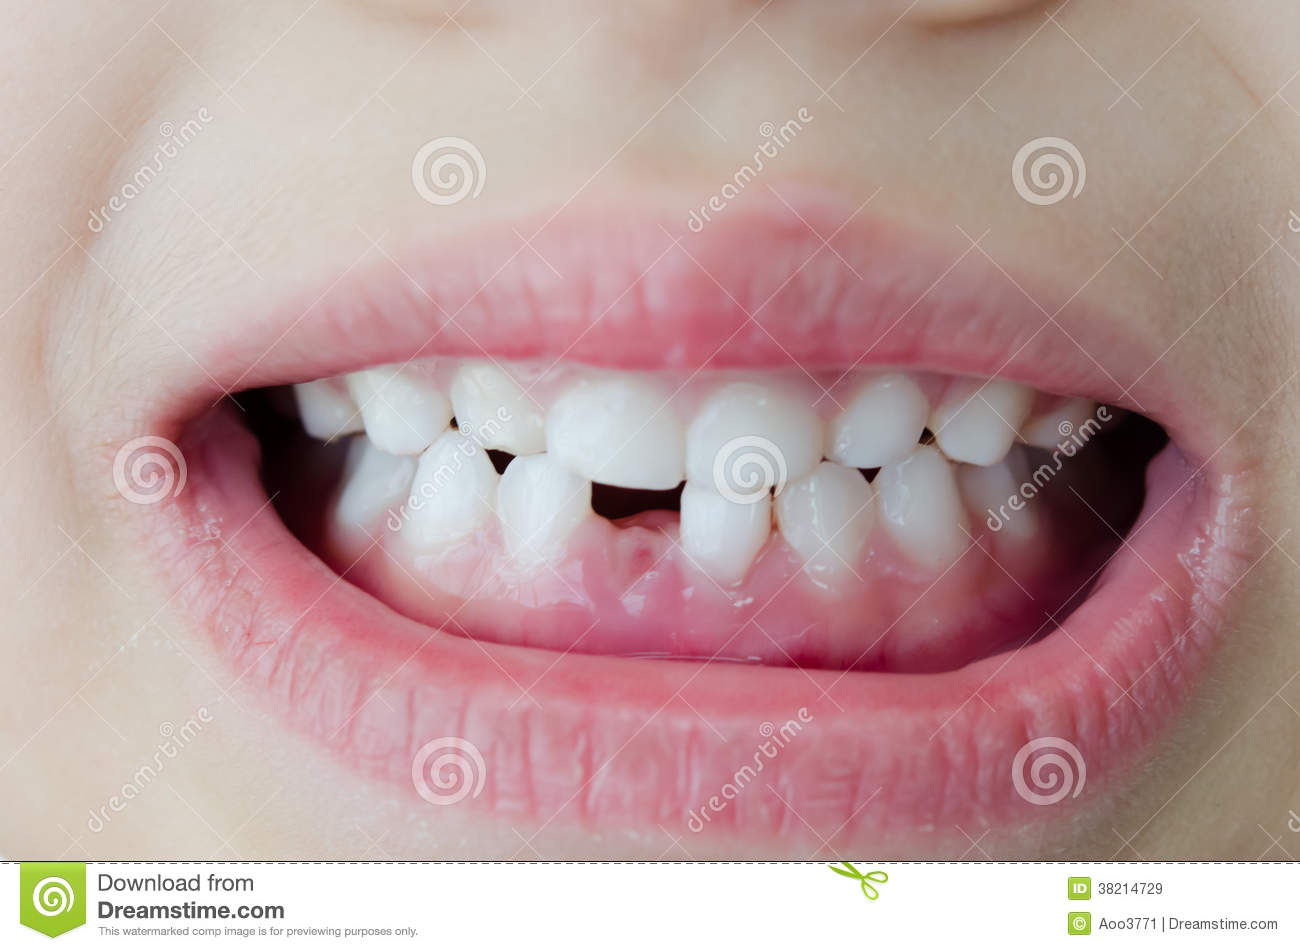 Child Broken Tooth Royalty Free Stock Images   Image  38214729